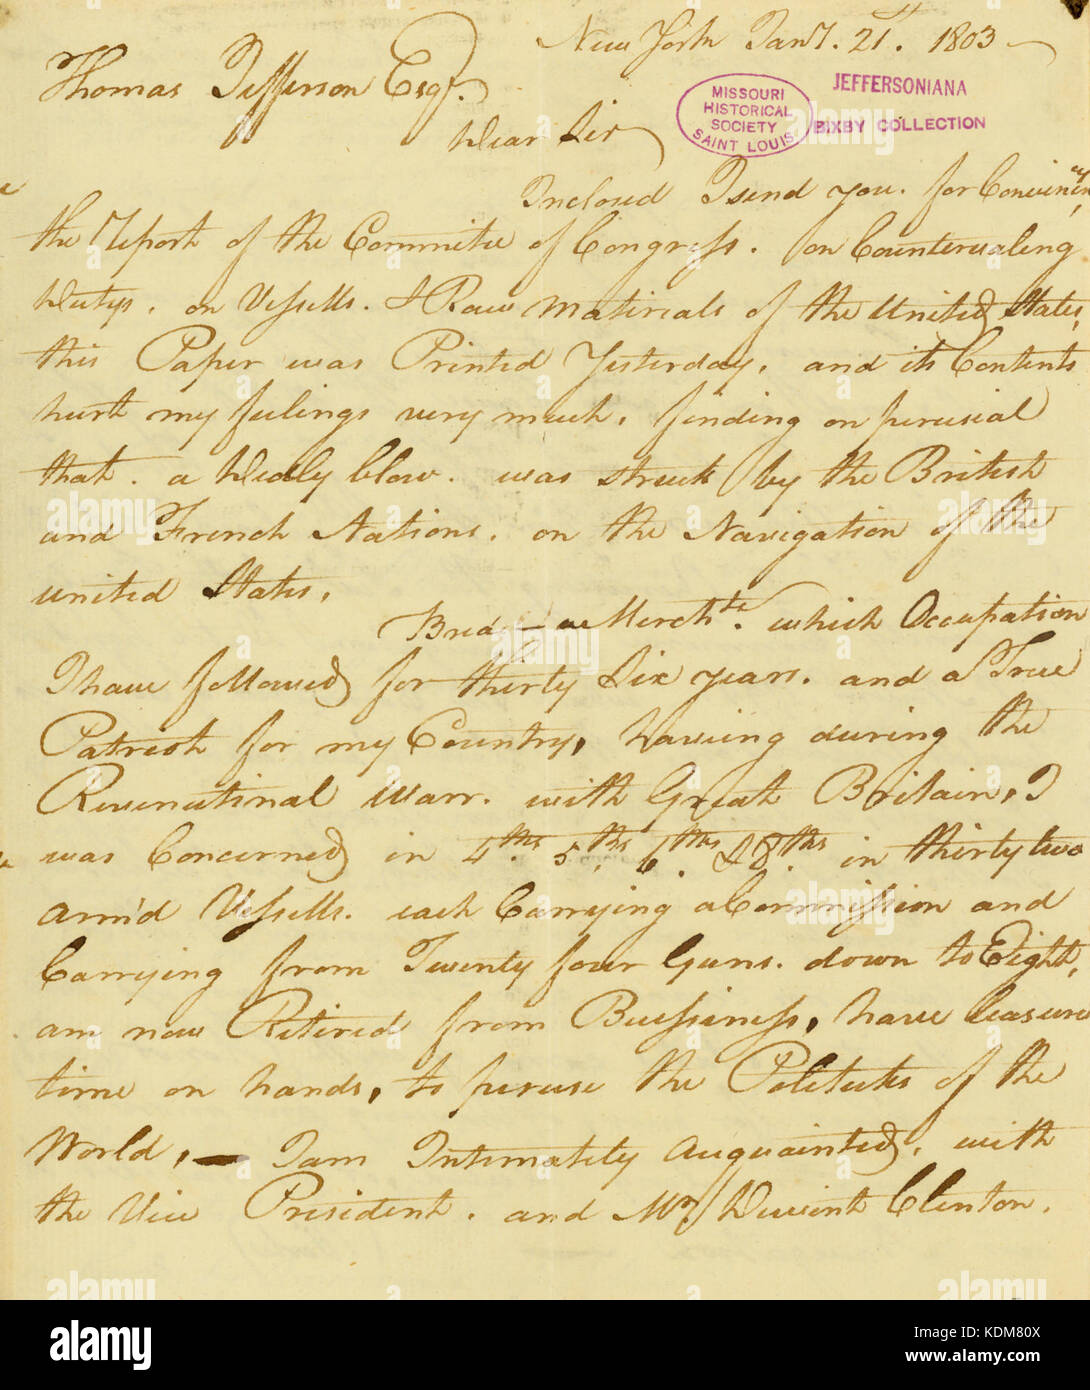 Letter from James A  Stewart, New York, to Thomas Jefferson